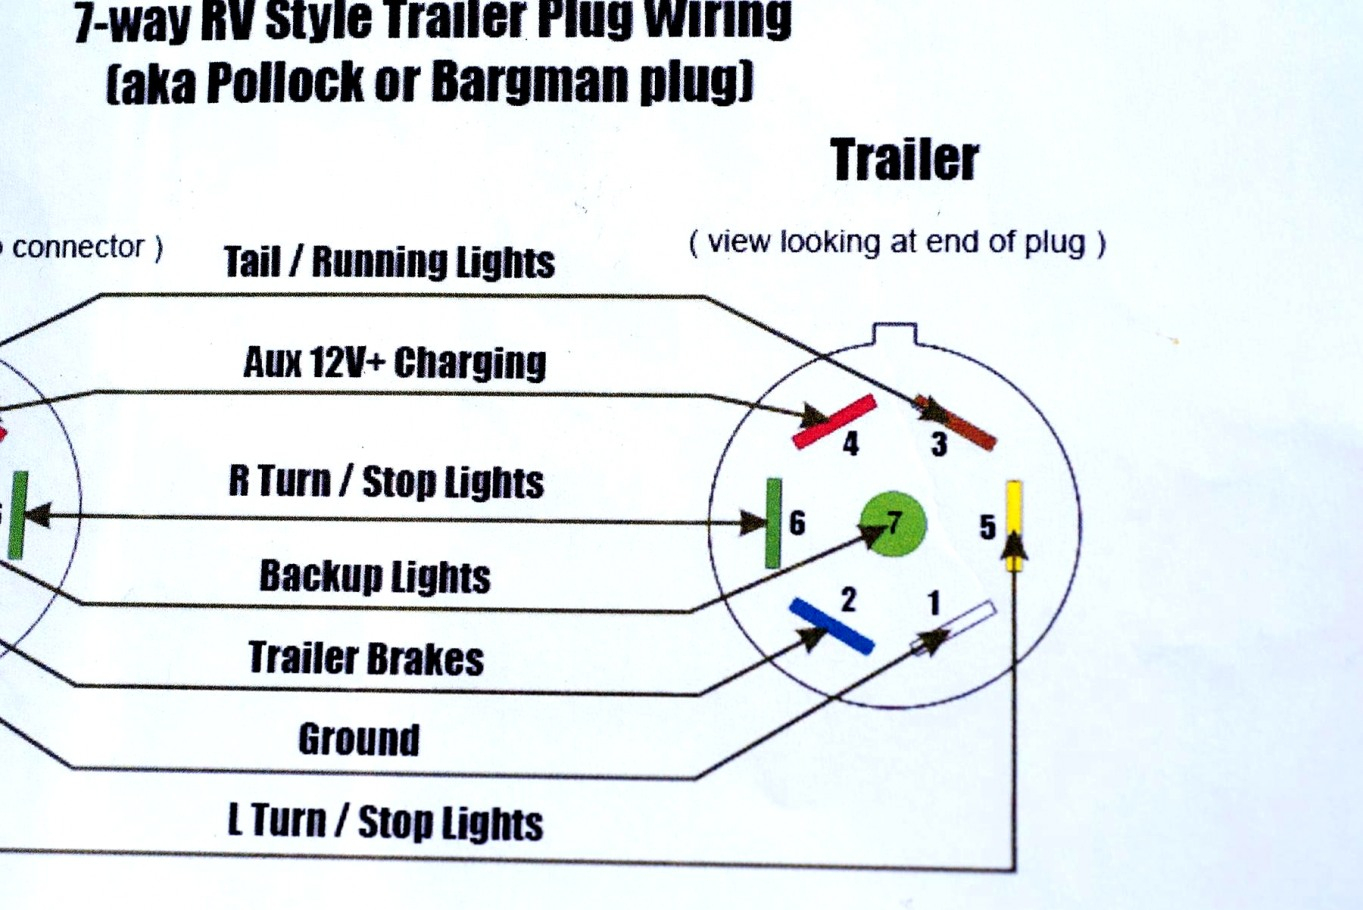 7 Way Trailer Wire Diagram Abs - Wiring Diagrams Thumbs - 7 Way Semi Trailer Plug Wiring Diagram